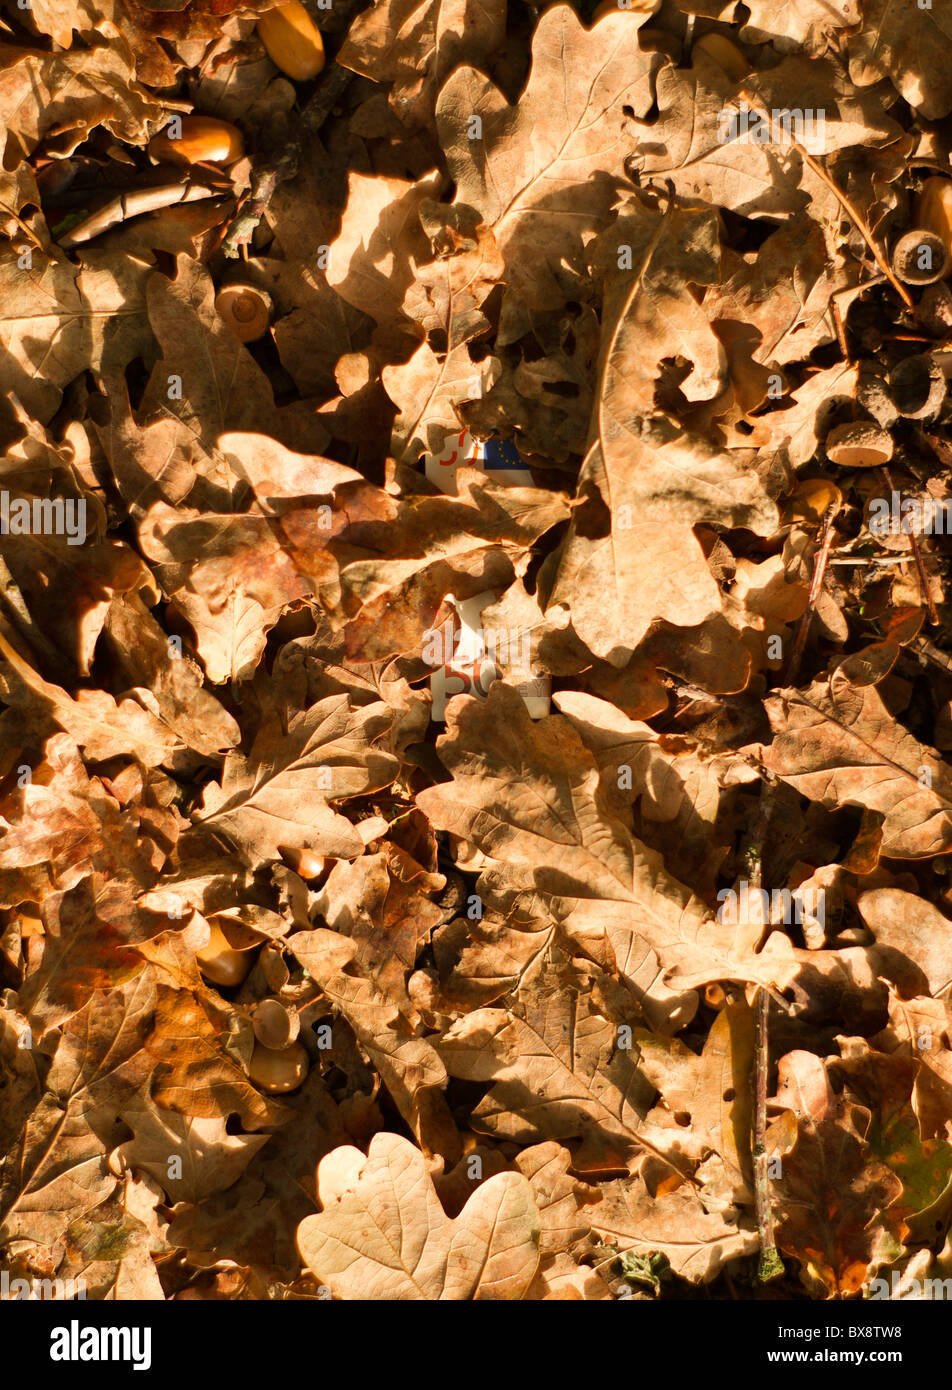 Autumn leaves with concealed fifty Euro note - Stock Image